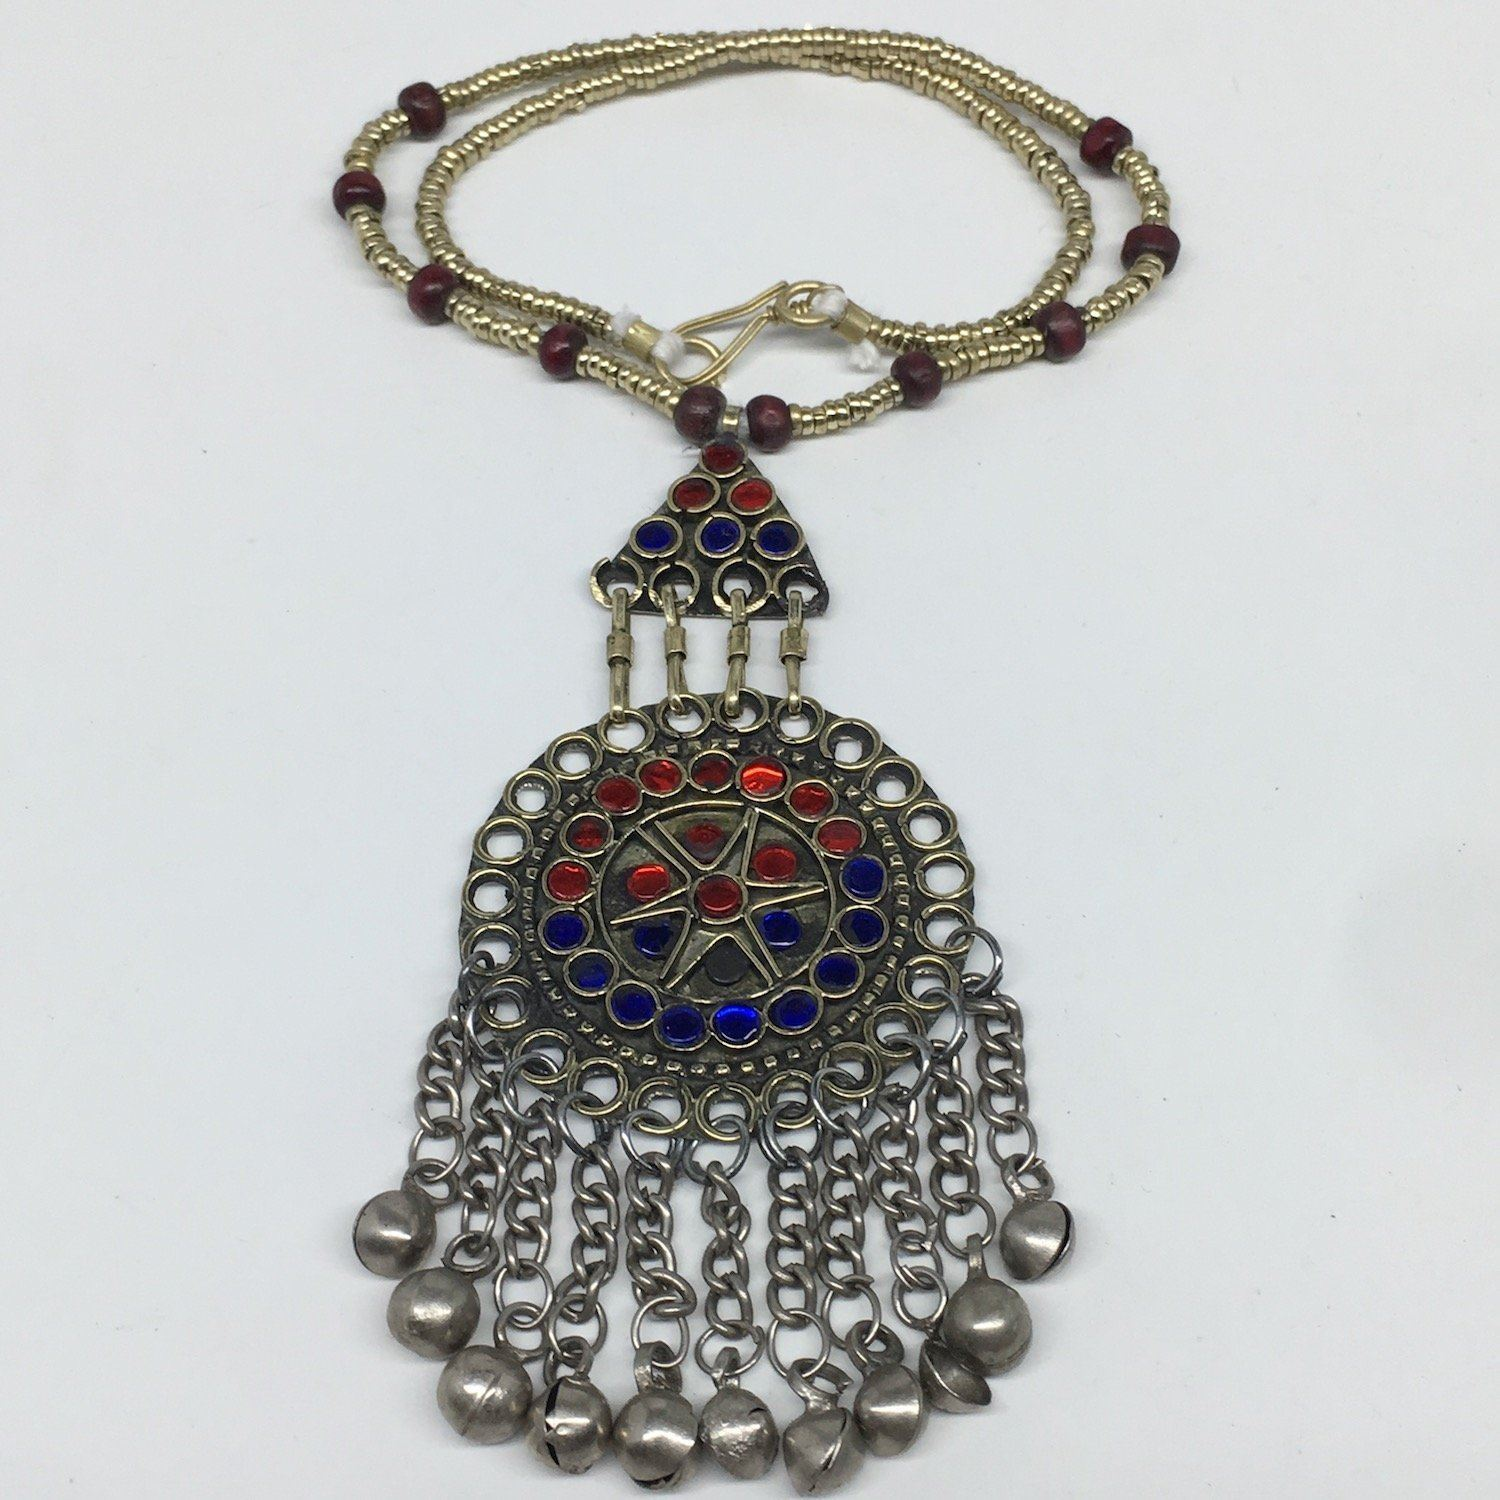 Kuchi Necklace Afghan Tribal Fashion Colorful Glass ATS Necktie Necklace, KN414